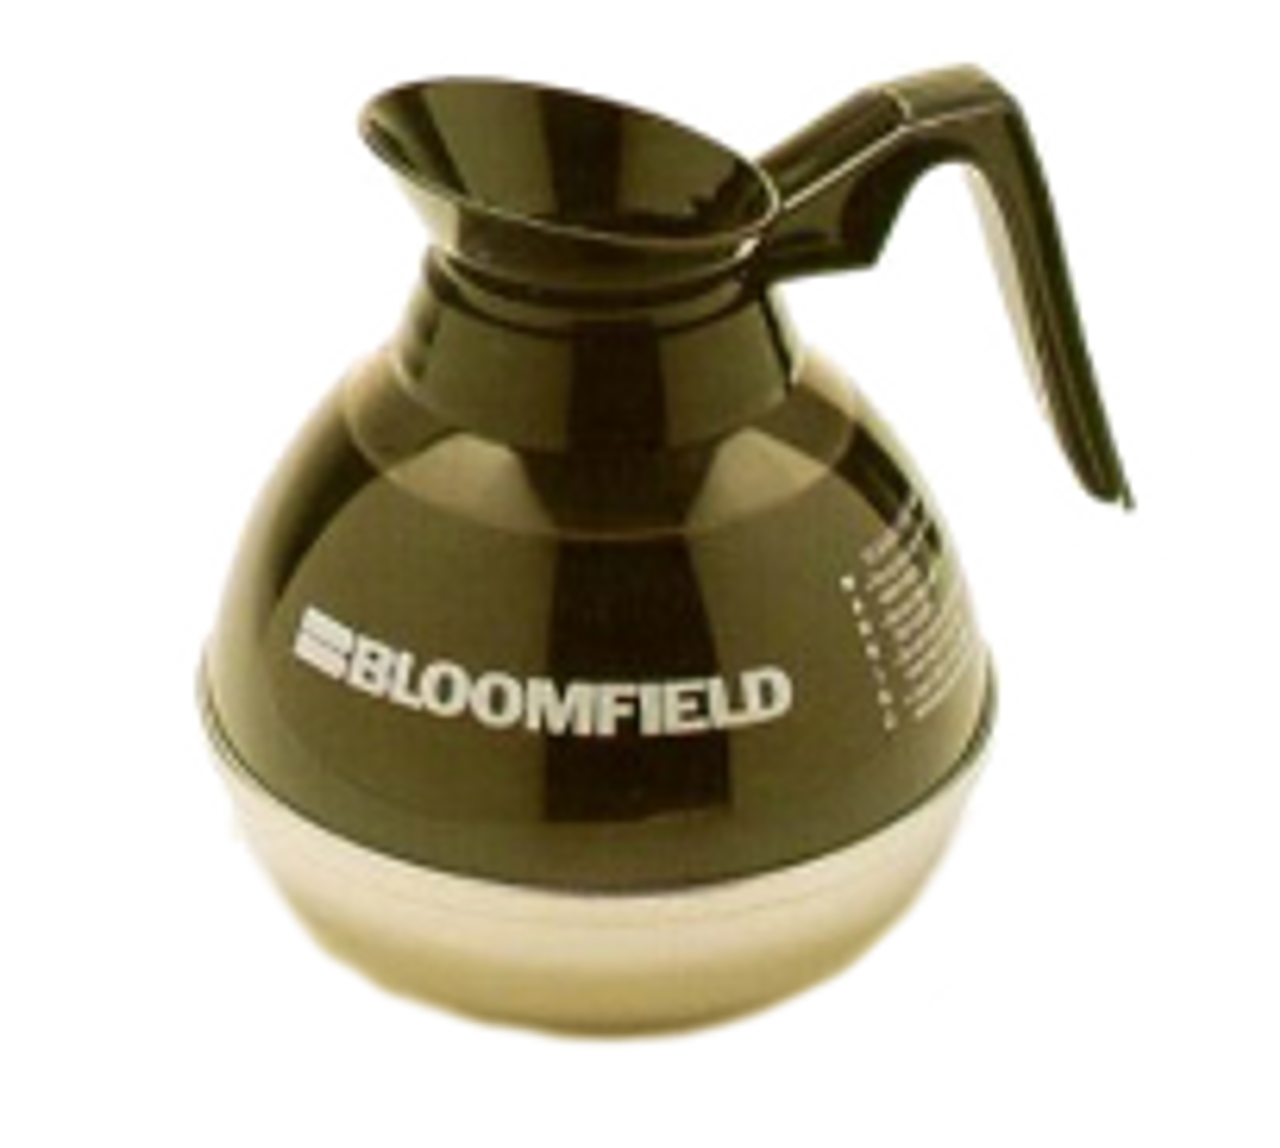 Bloomfield REG8890BL24 Unbreakable Stainless & Plastic Decanter w/ Black Handle